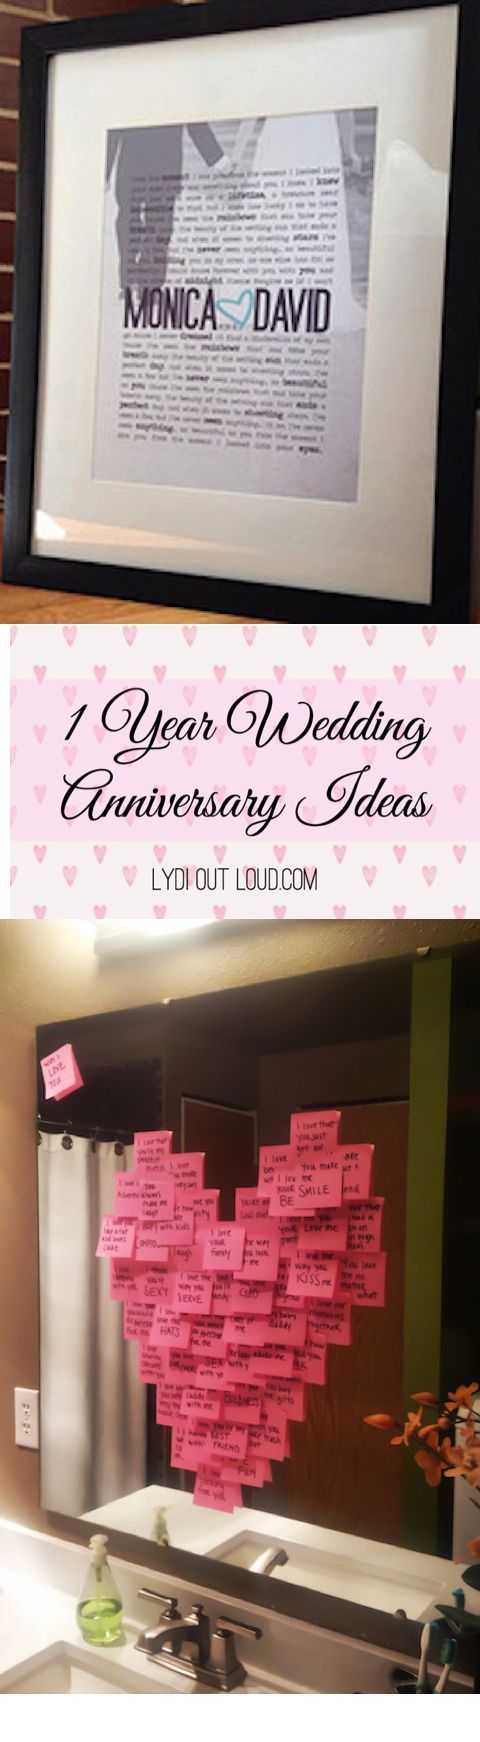 1 Year Wedding Anniversary Ideas Paper Gift Anniversarygifts 1yearanniversarygifts 1yearweddinganniversary